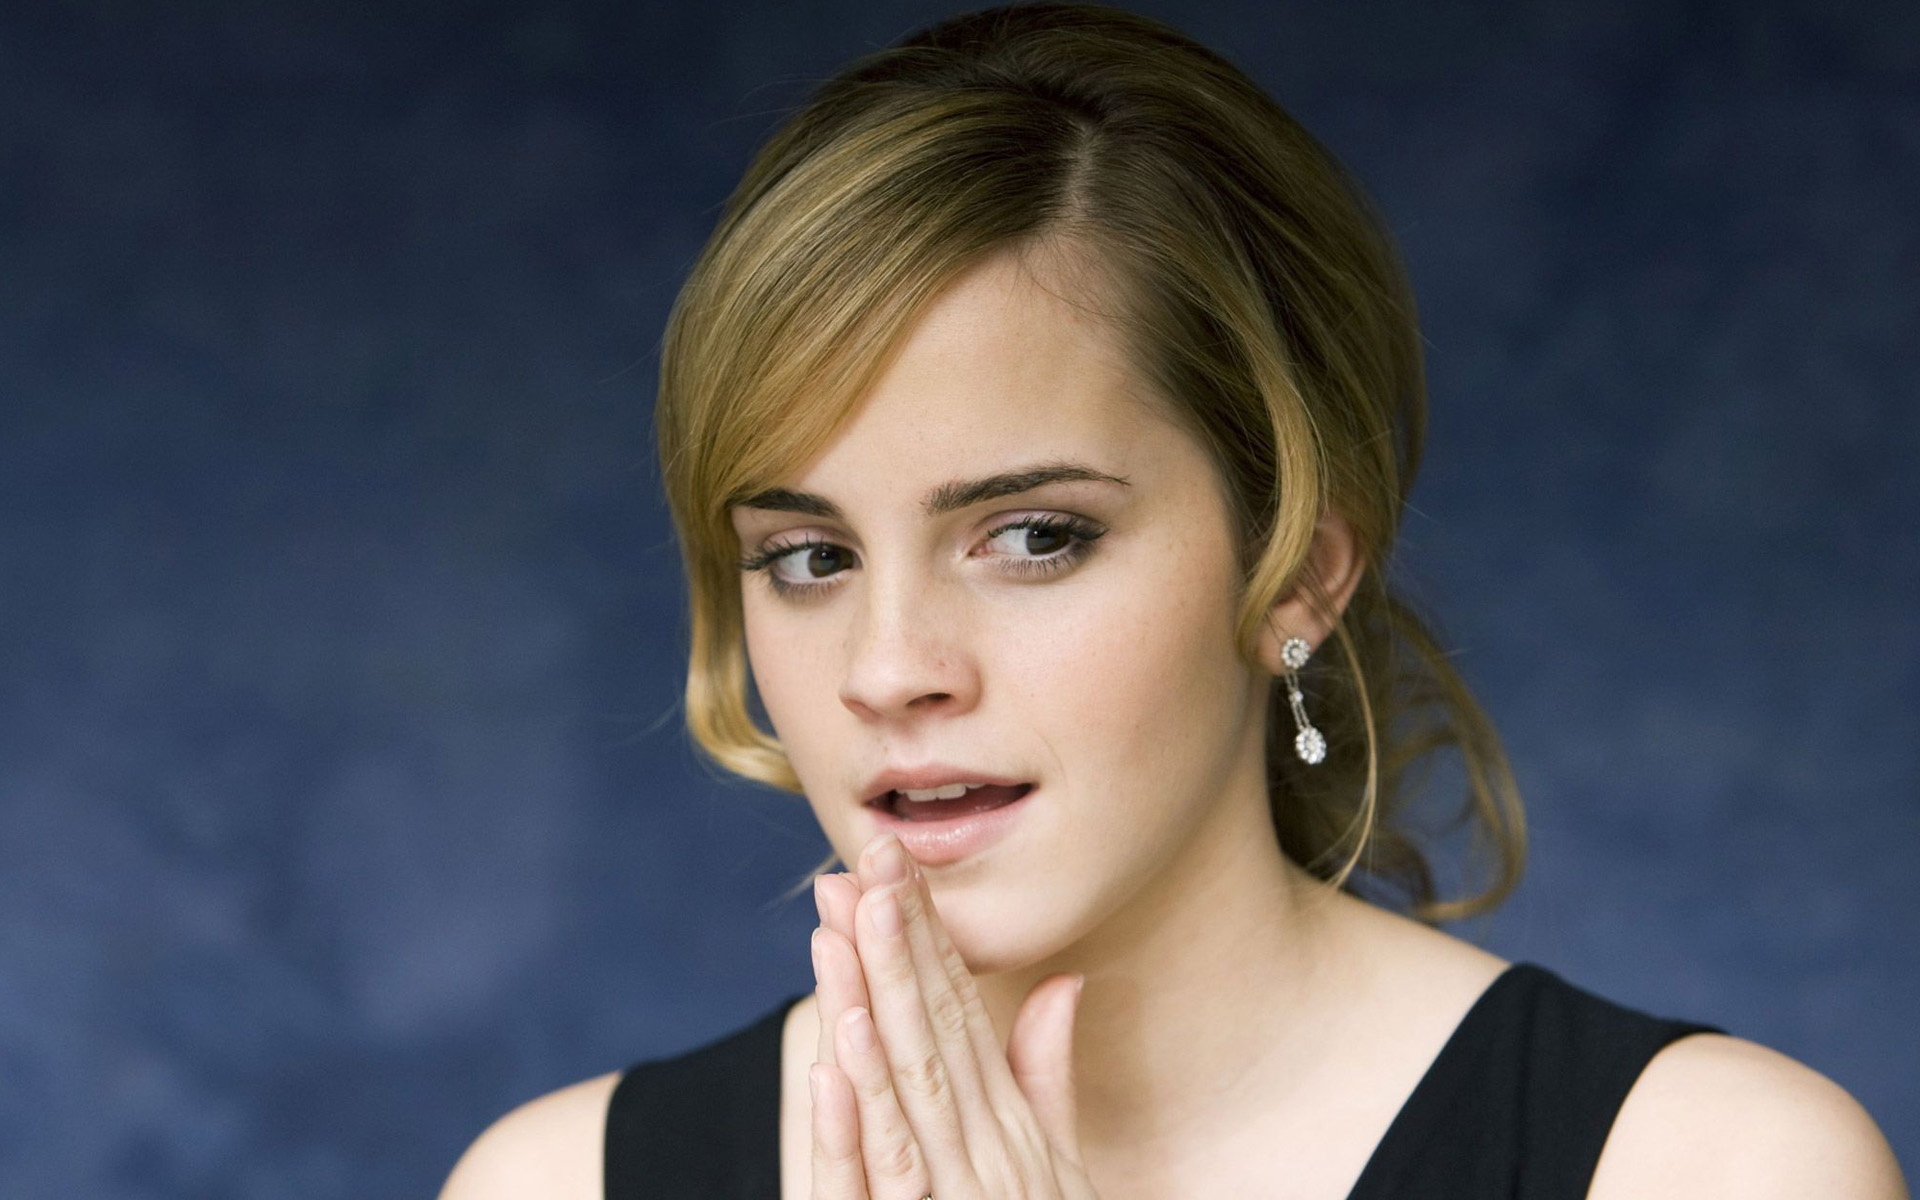 Emma Watson Thinking Wide Screen HD 653.68 Kb